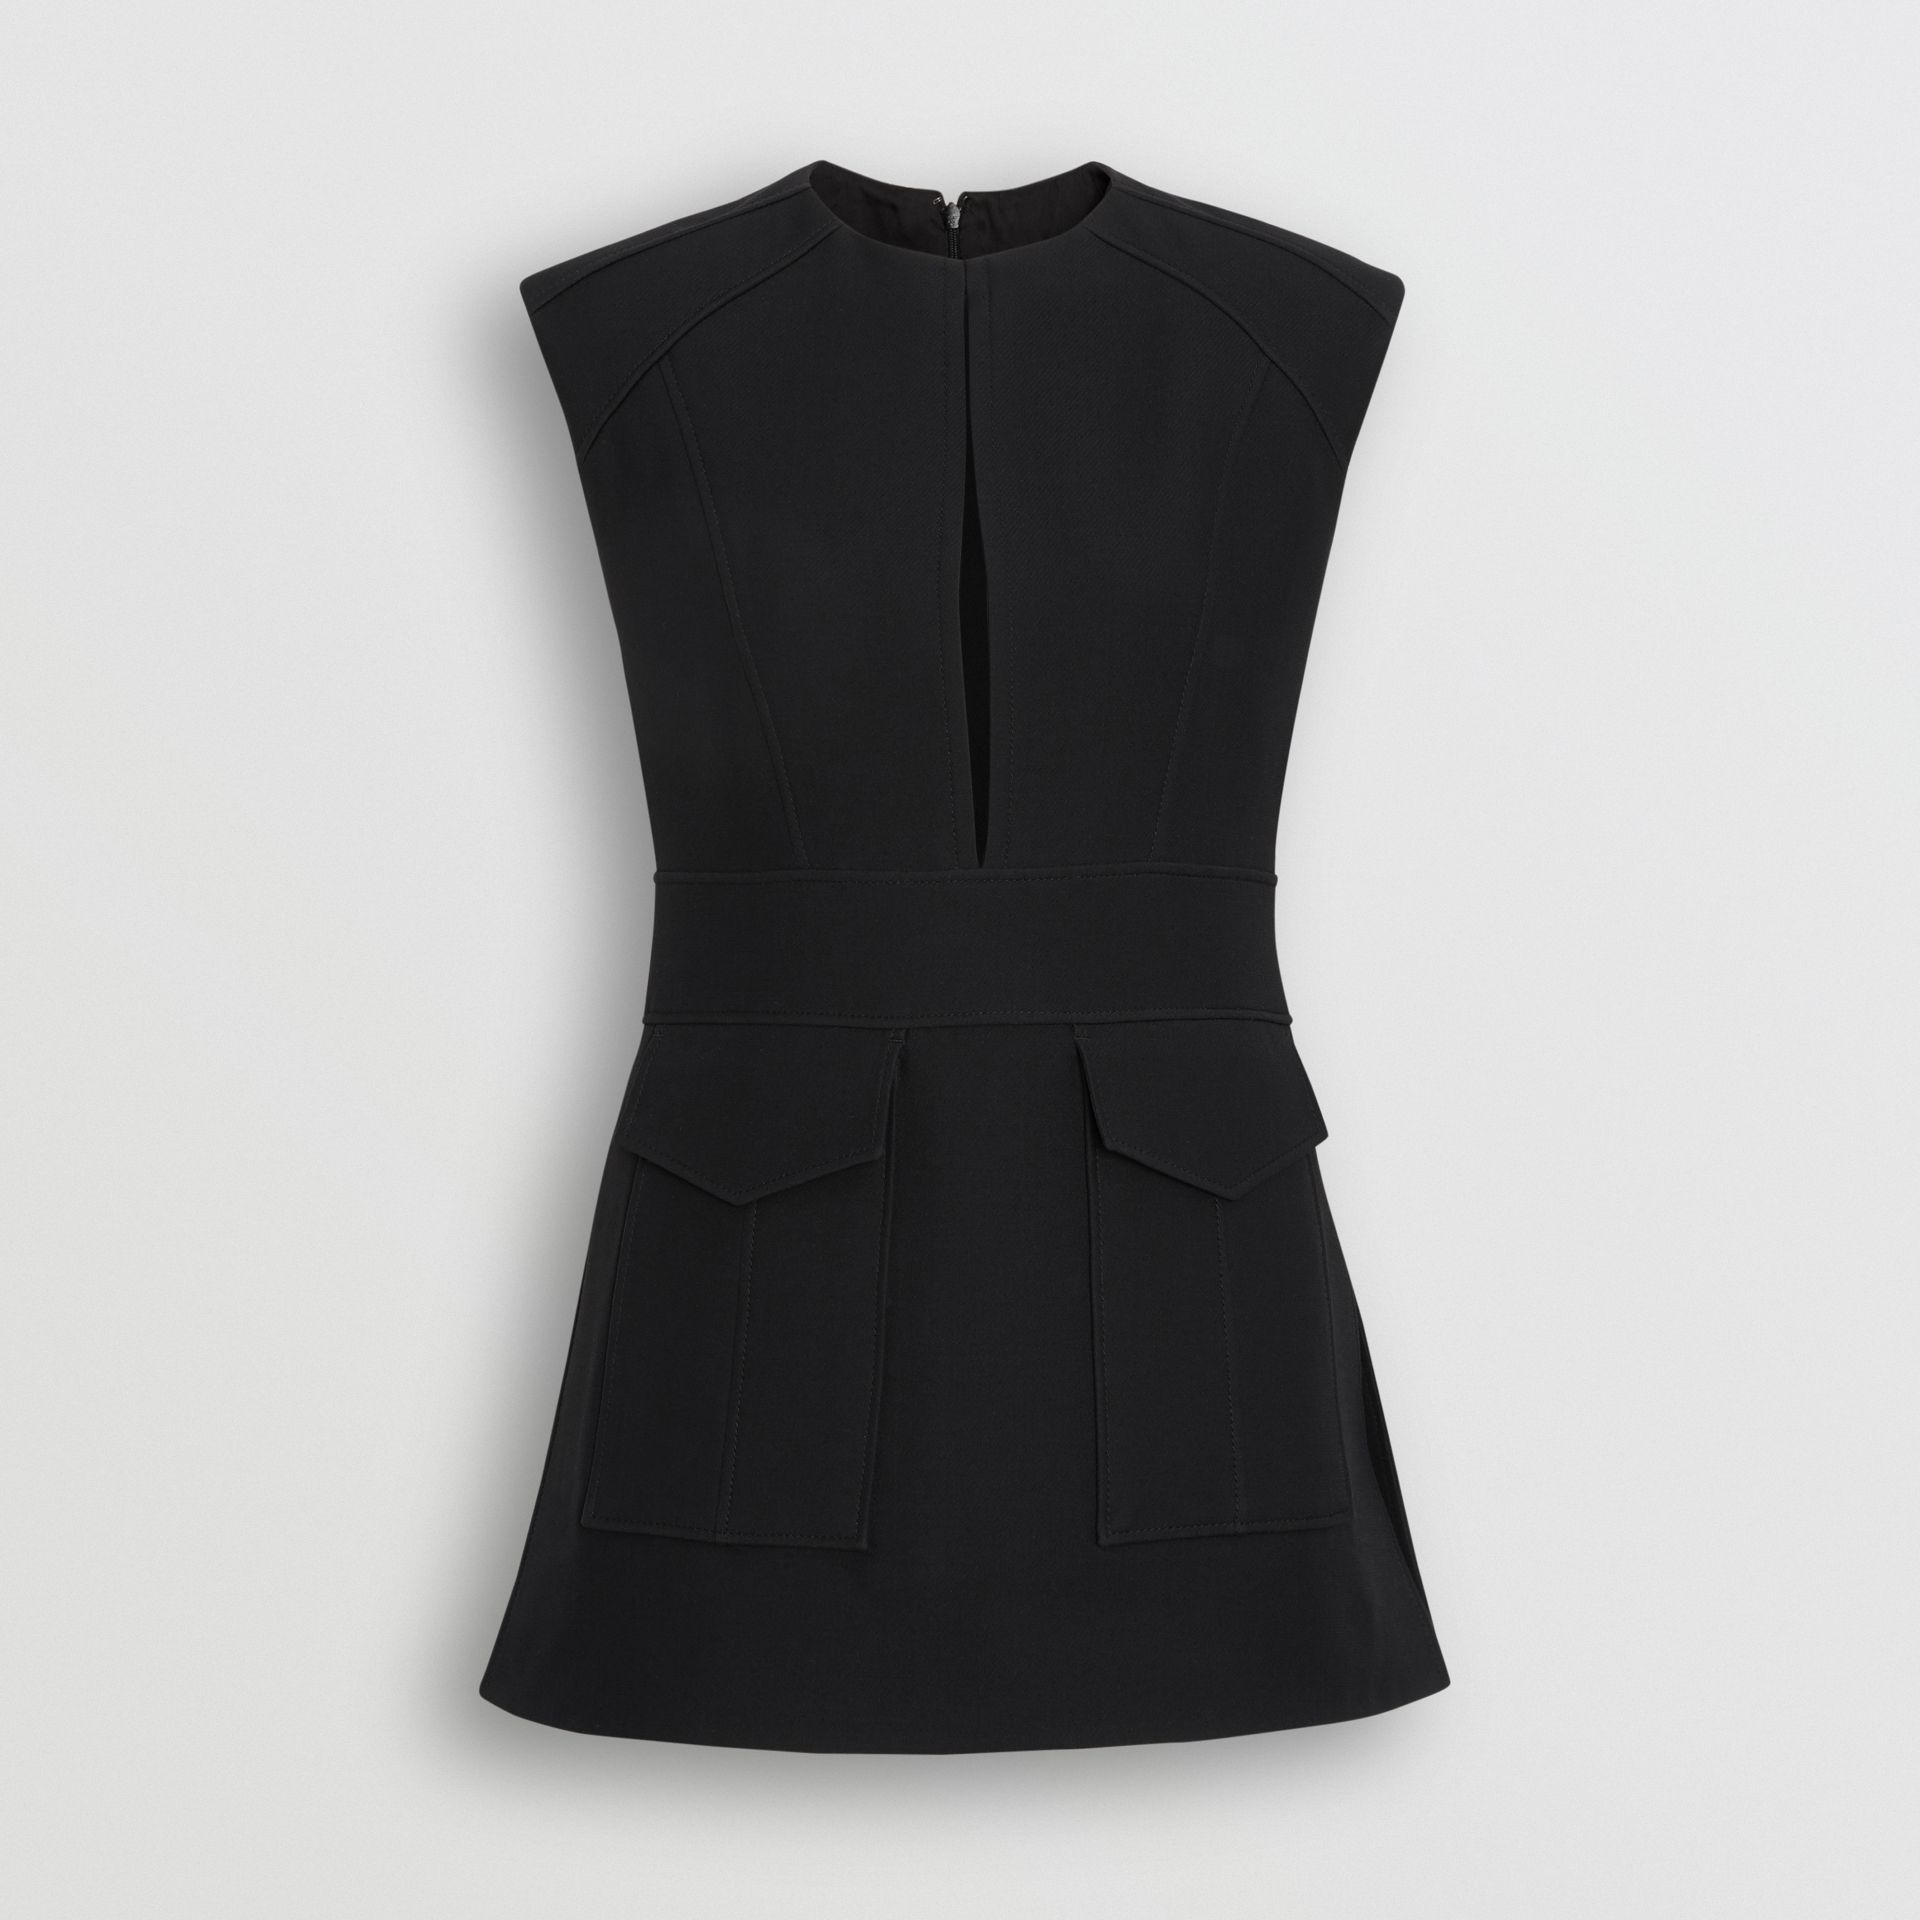 Keyhole Detail Sleeveless Wool Silk Top in Black - Women | Burberry - gallery image 3